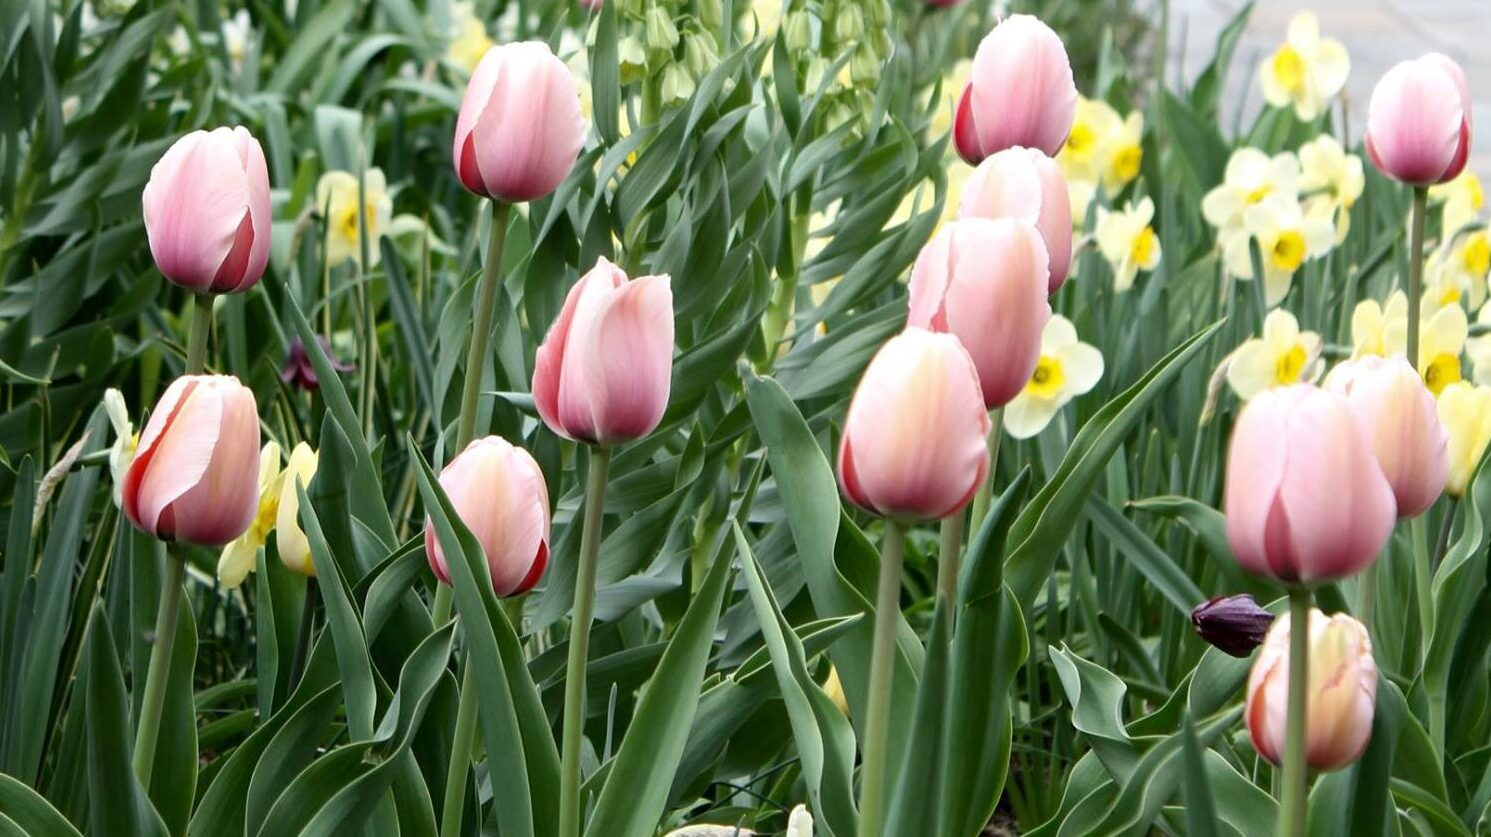 pink tulips in a garden setting